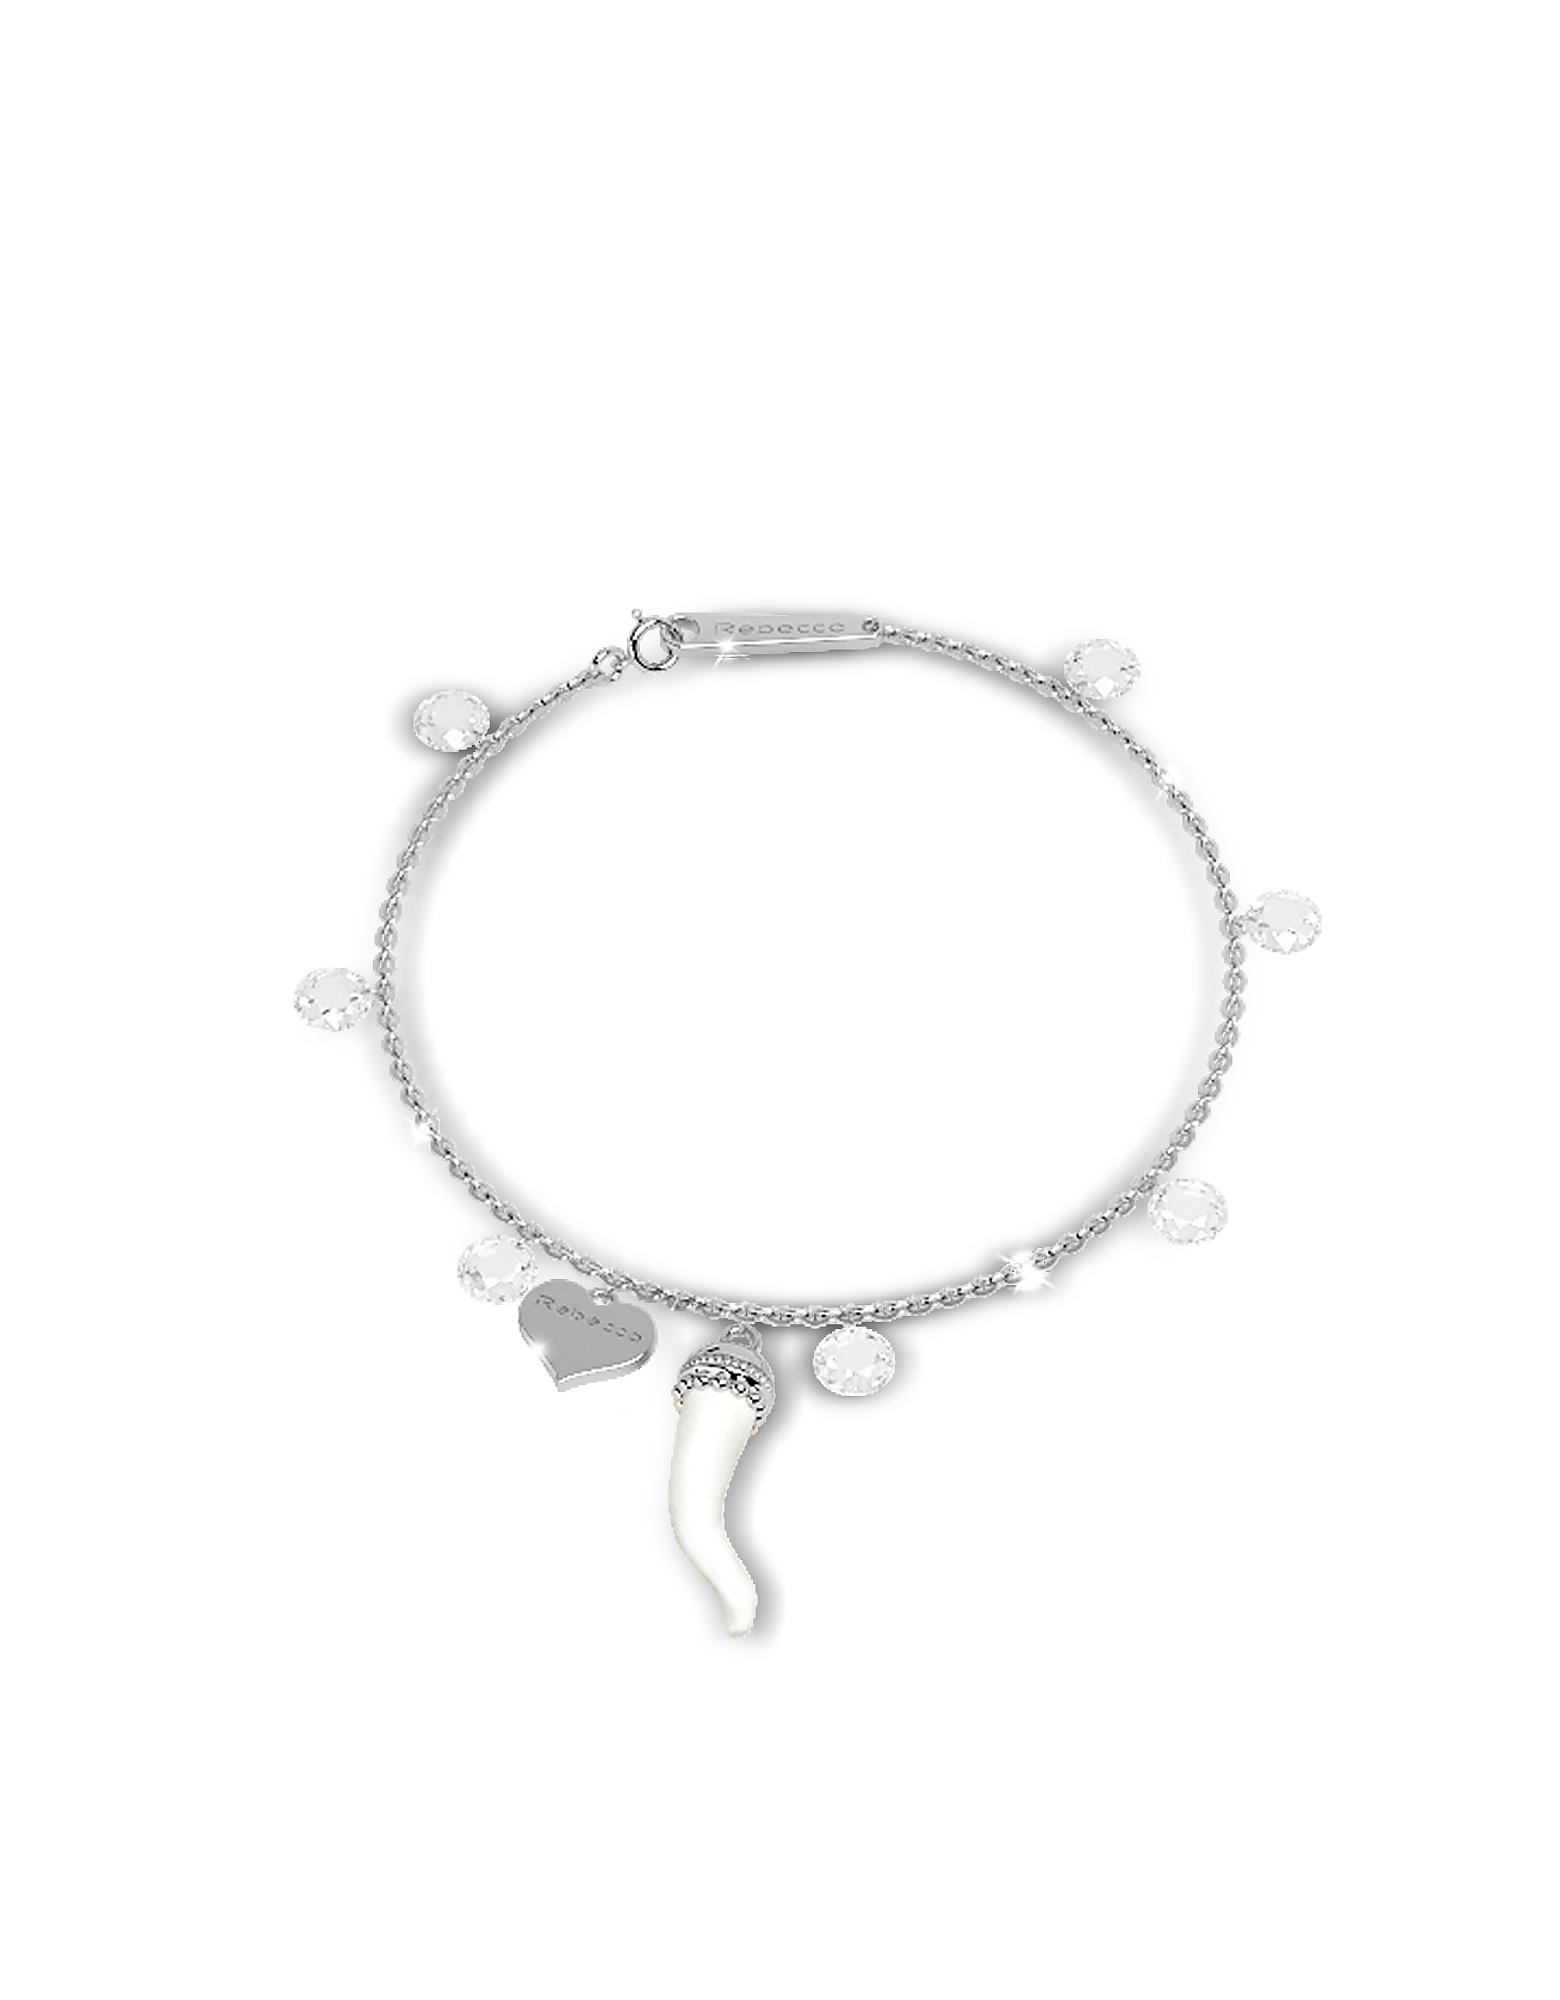 Lucciole Sterling Silver Bracelet w/Crystals